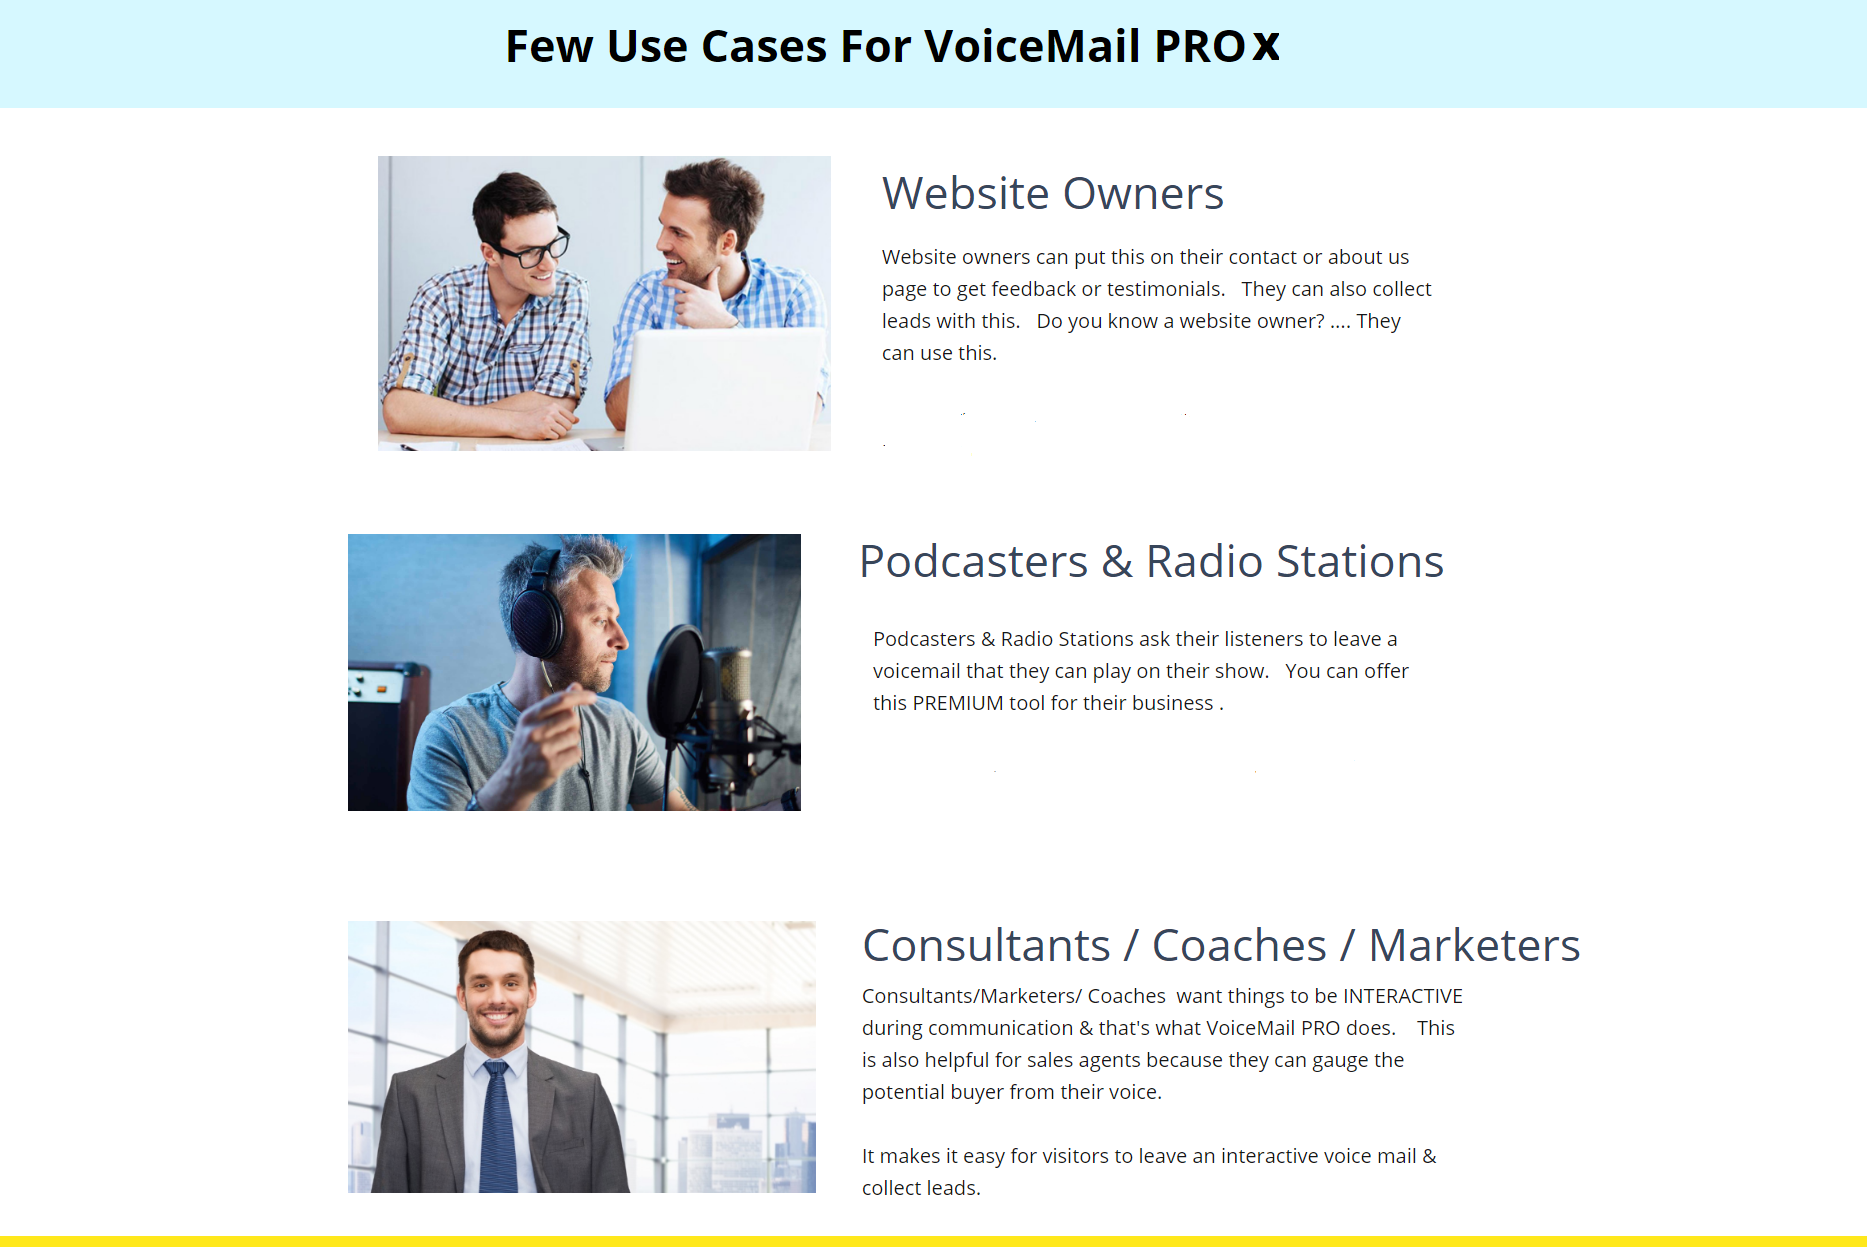 VoiceMail Pro